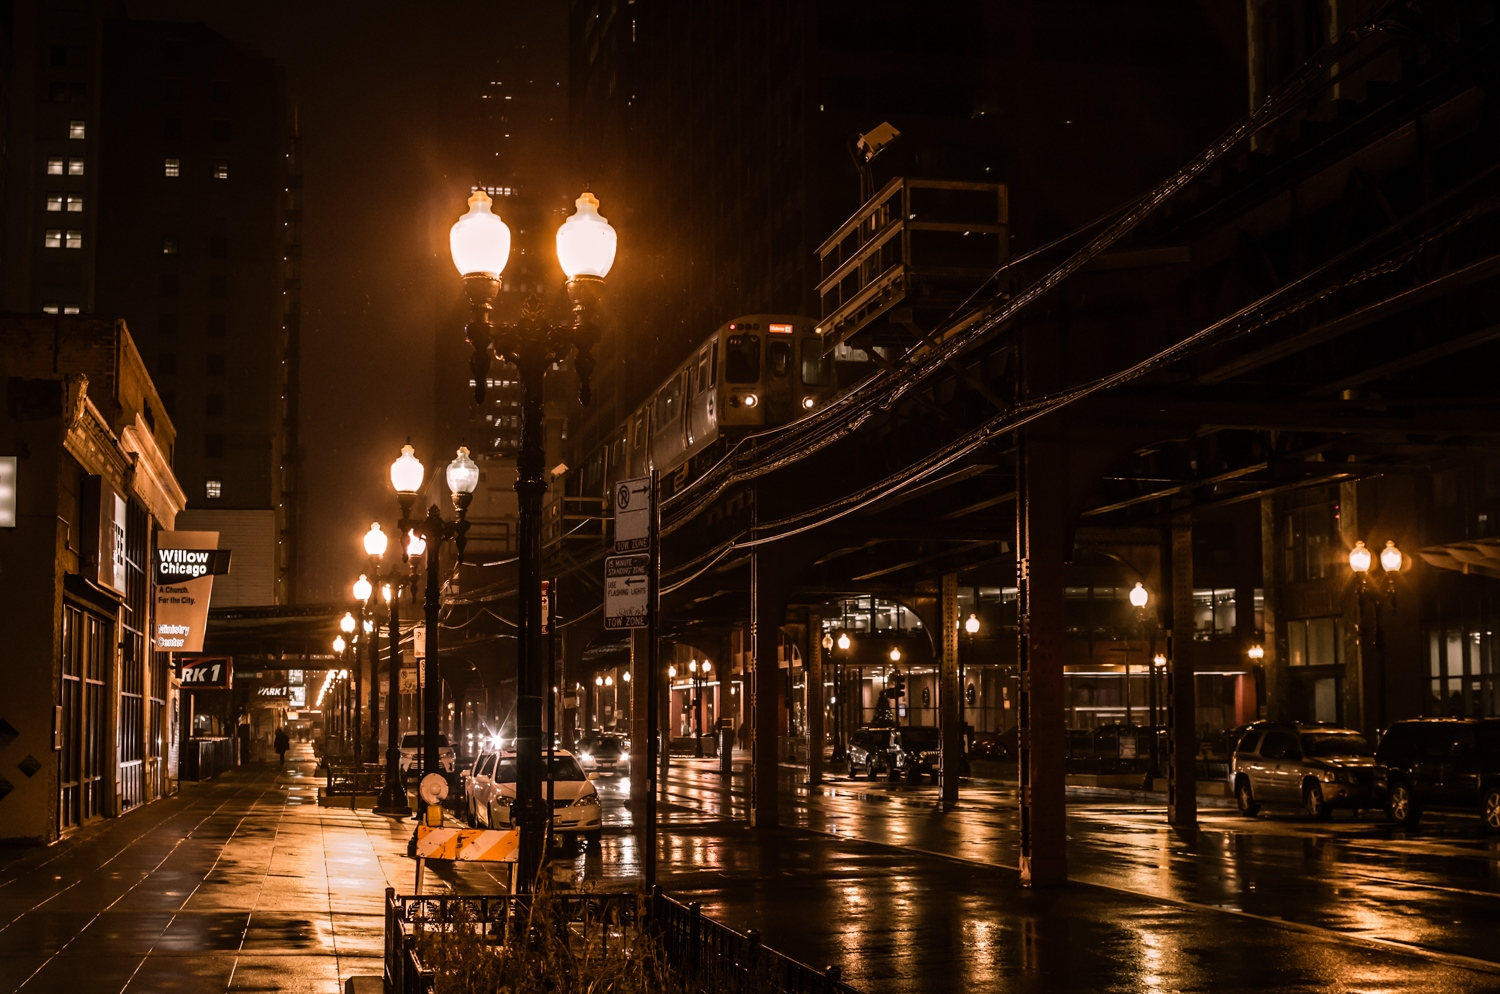 Art and Documentary Photography - Loading -The_Street_as_Graphic_Novel__Elevated_Train__Wabash_Ave.jpg